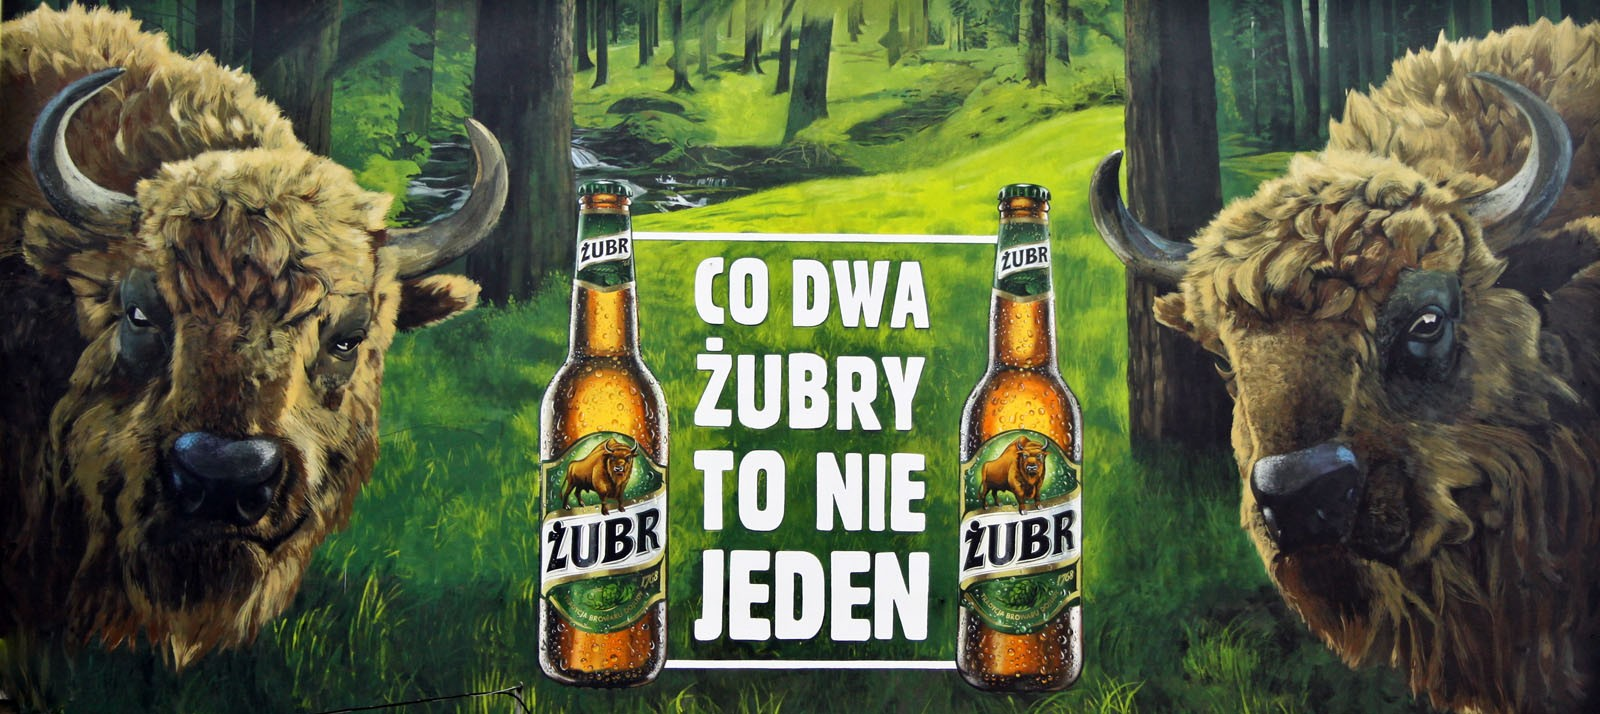 Every two Zubr are better than one beer advertisement painted on the wall | Every two Zubr are better than one | Portfolio